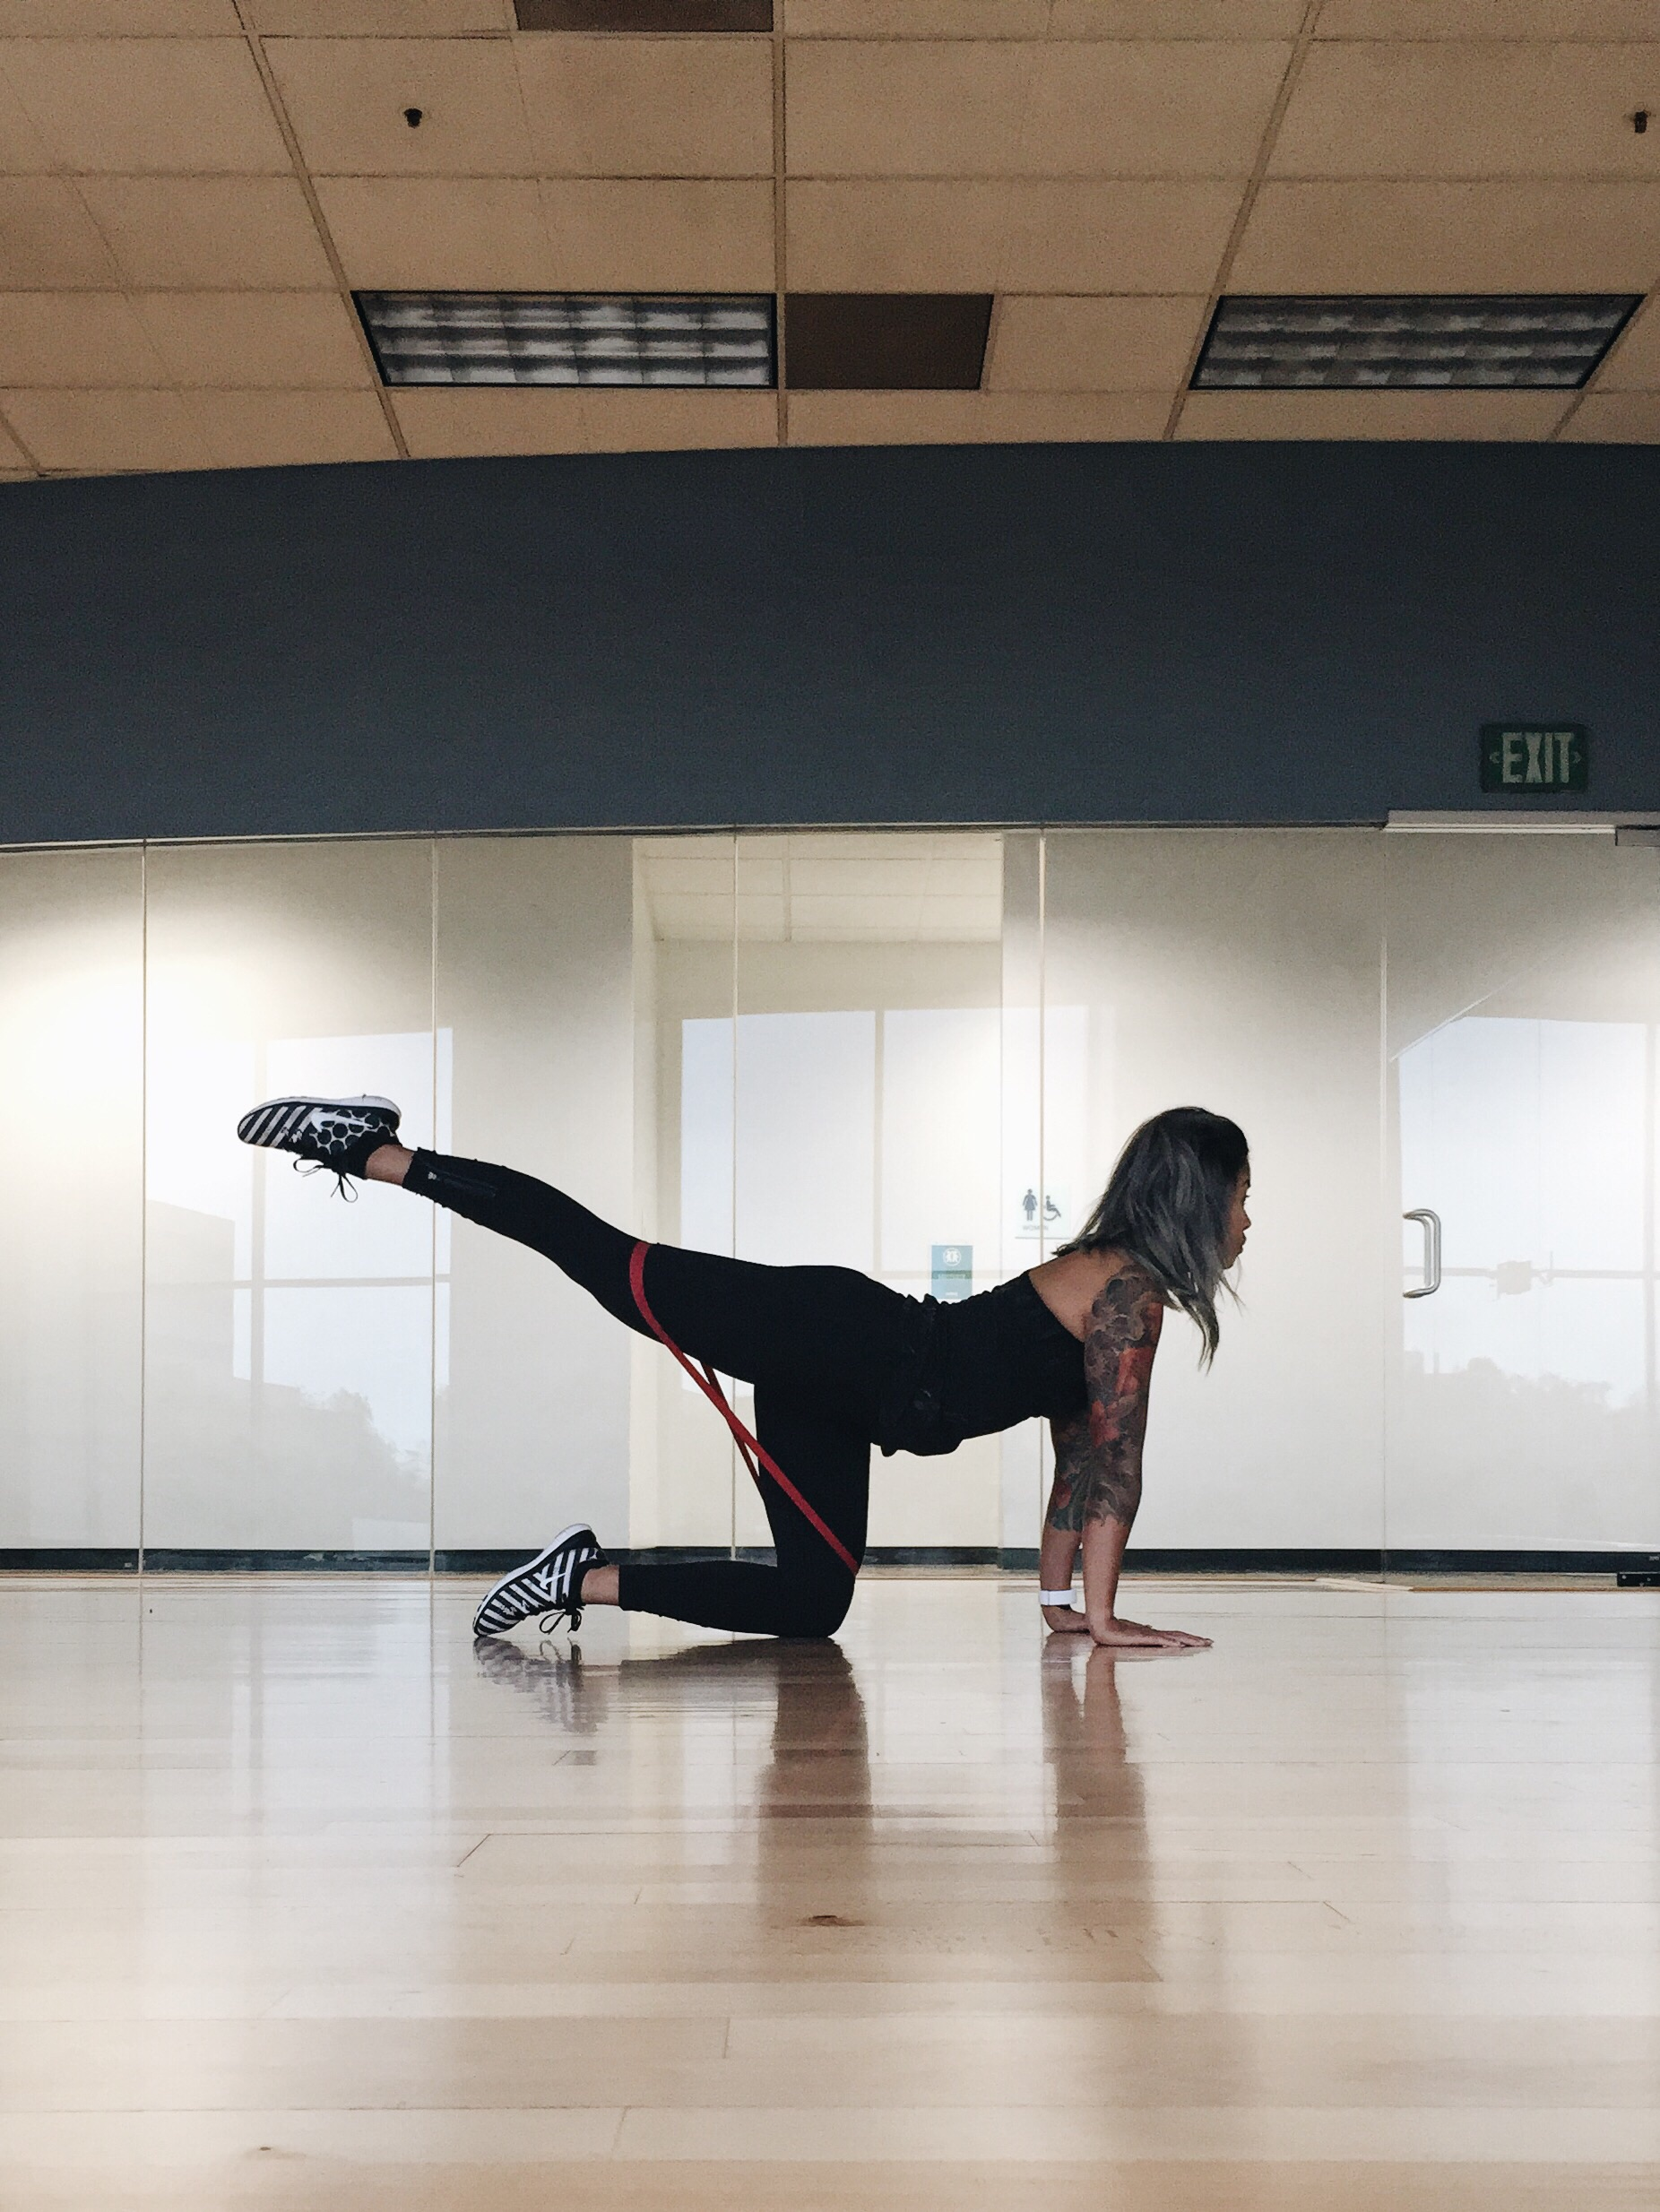 Straight leg donkey kicks -For the donkey kicks place the band above your knees, straighten one leg and lift up squeezing your glute, lower down with control.